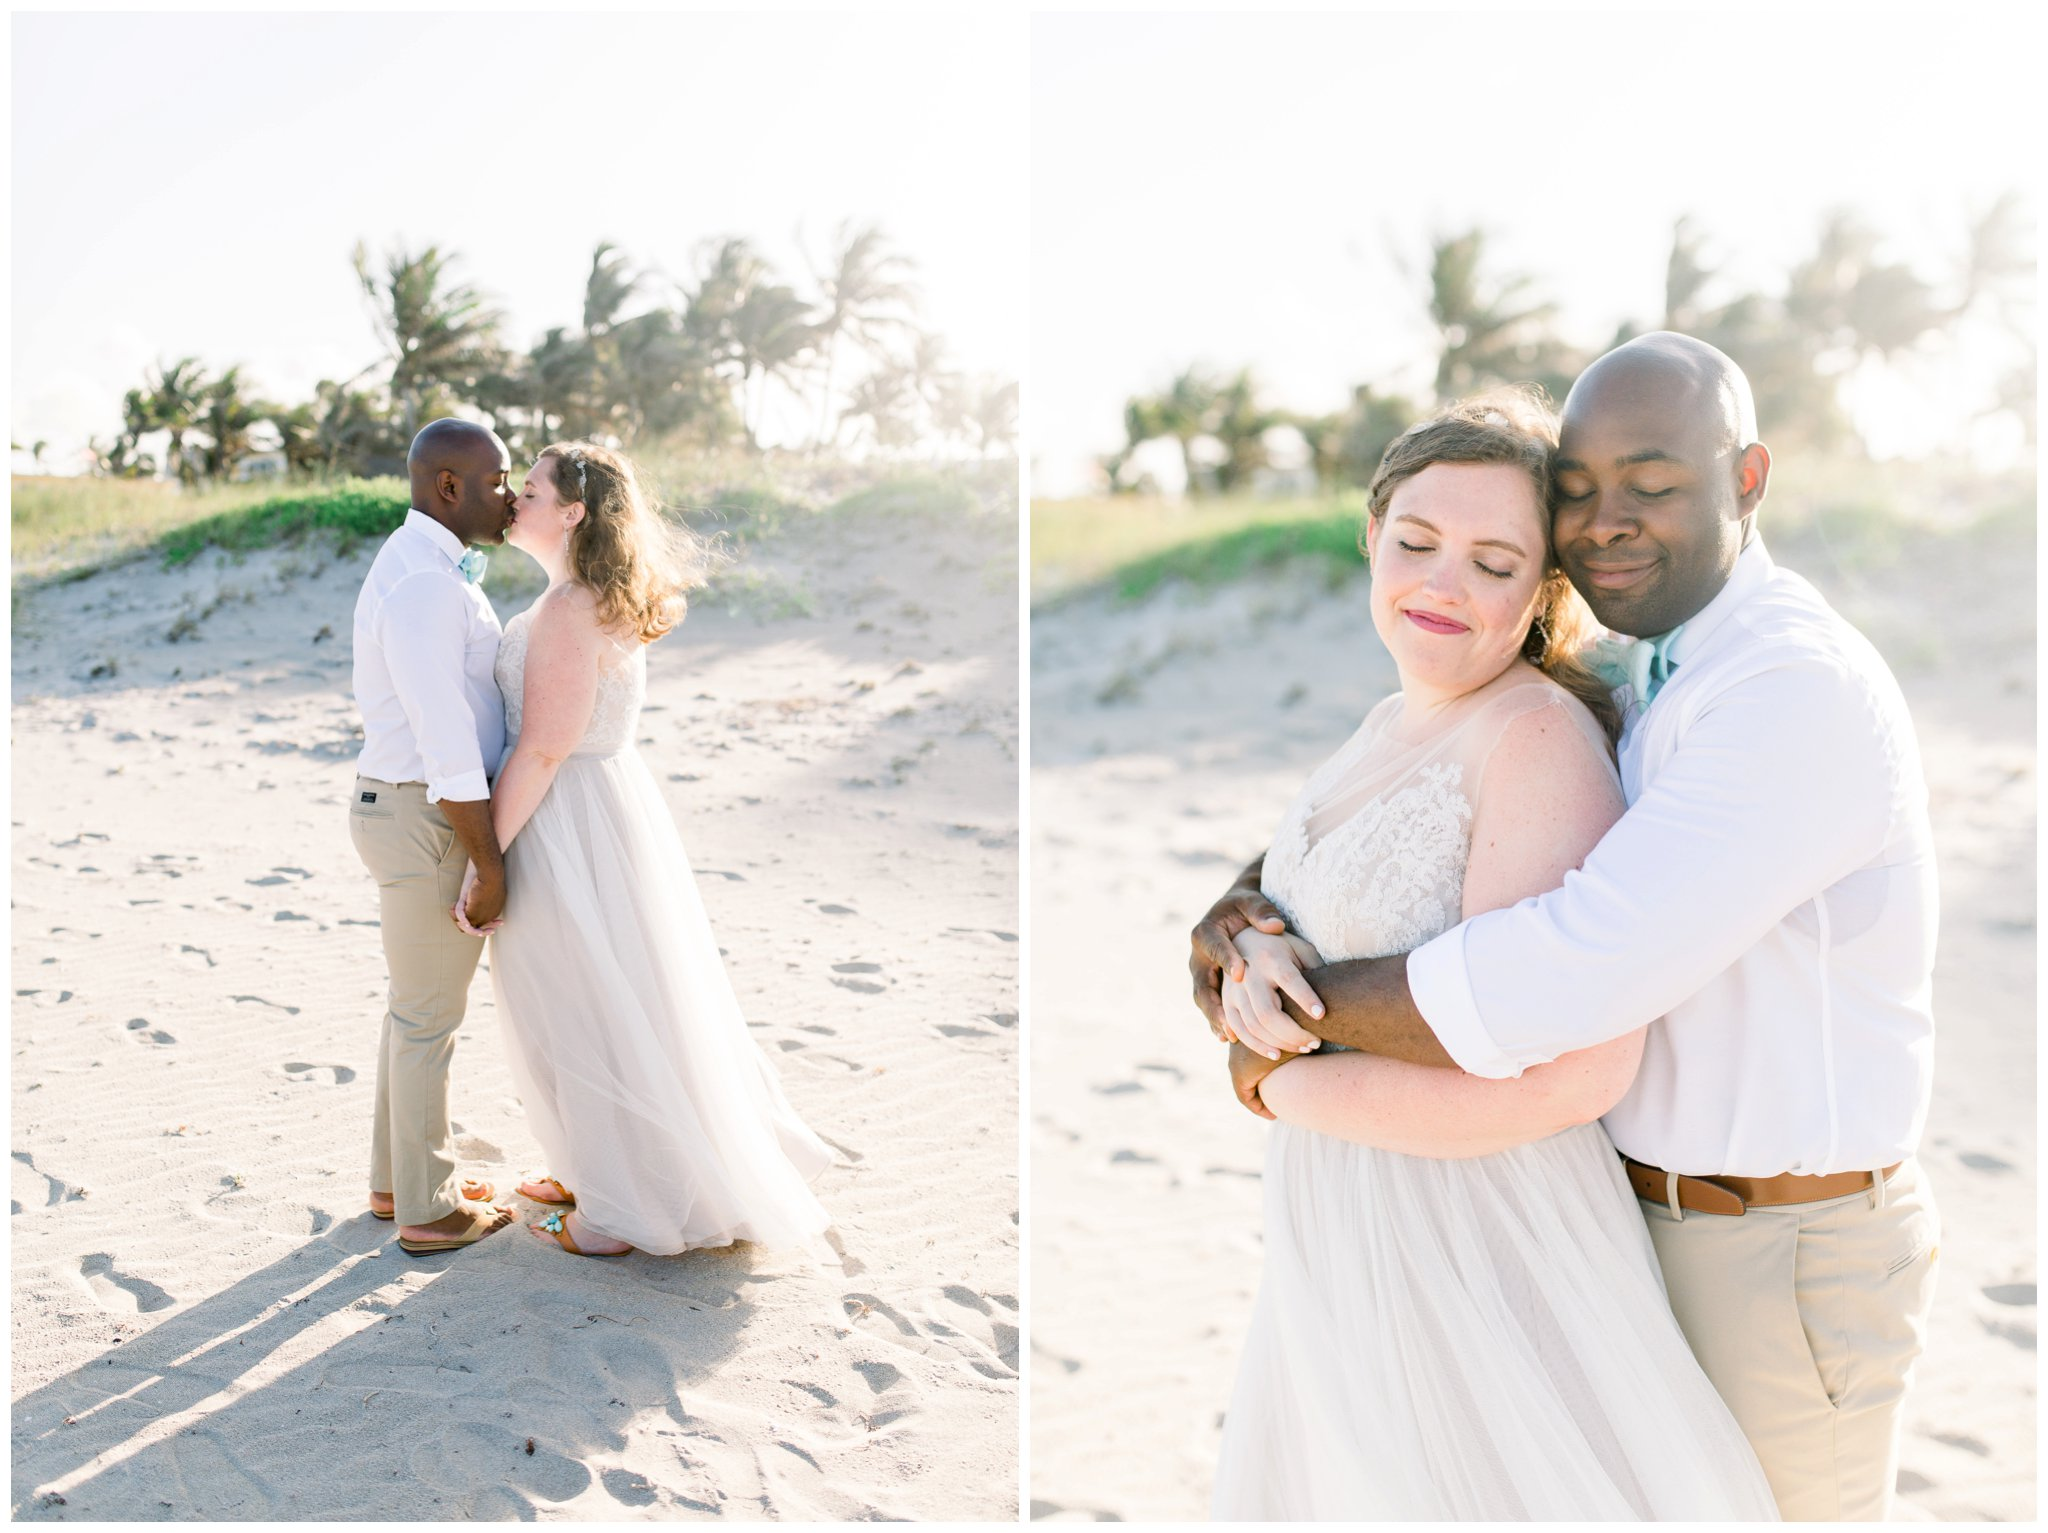 South Florida Wedding Photographer- Palm Beach Wedding Photographer- Jupiter Wedding Photographer- Florida Photographer- Wright by the Sea Wedding- Wright by the Sea- Sturat Florida Wedding_0050.jpg